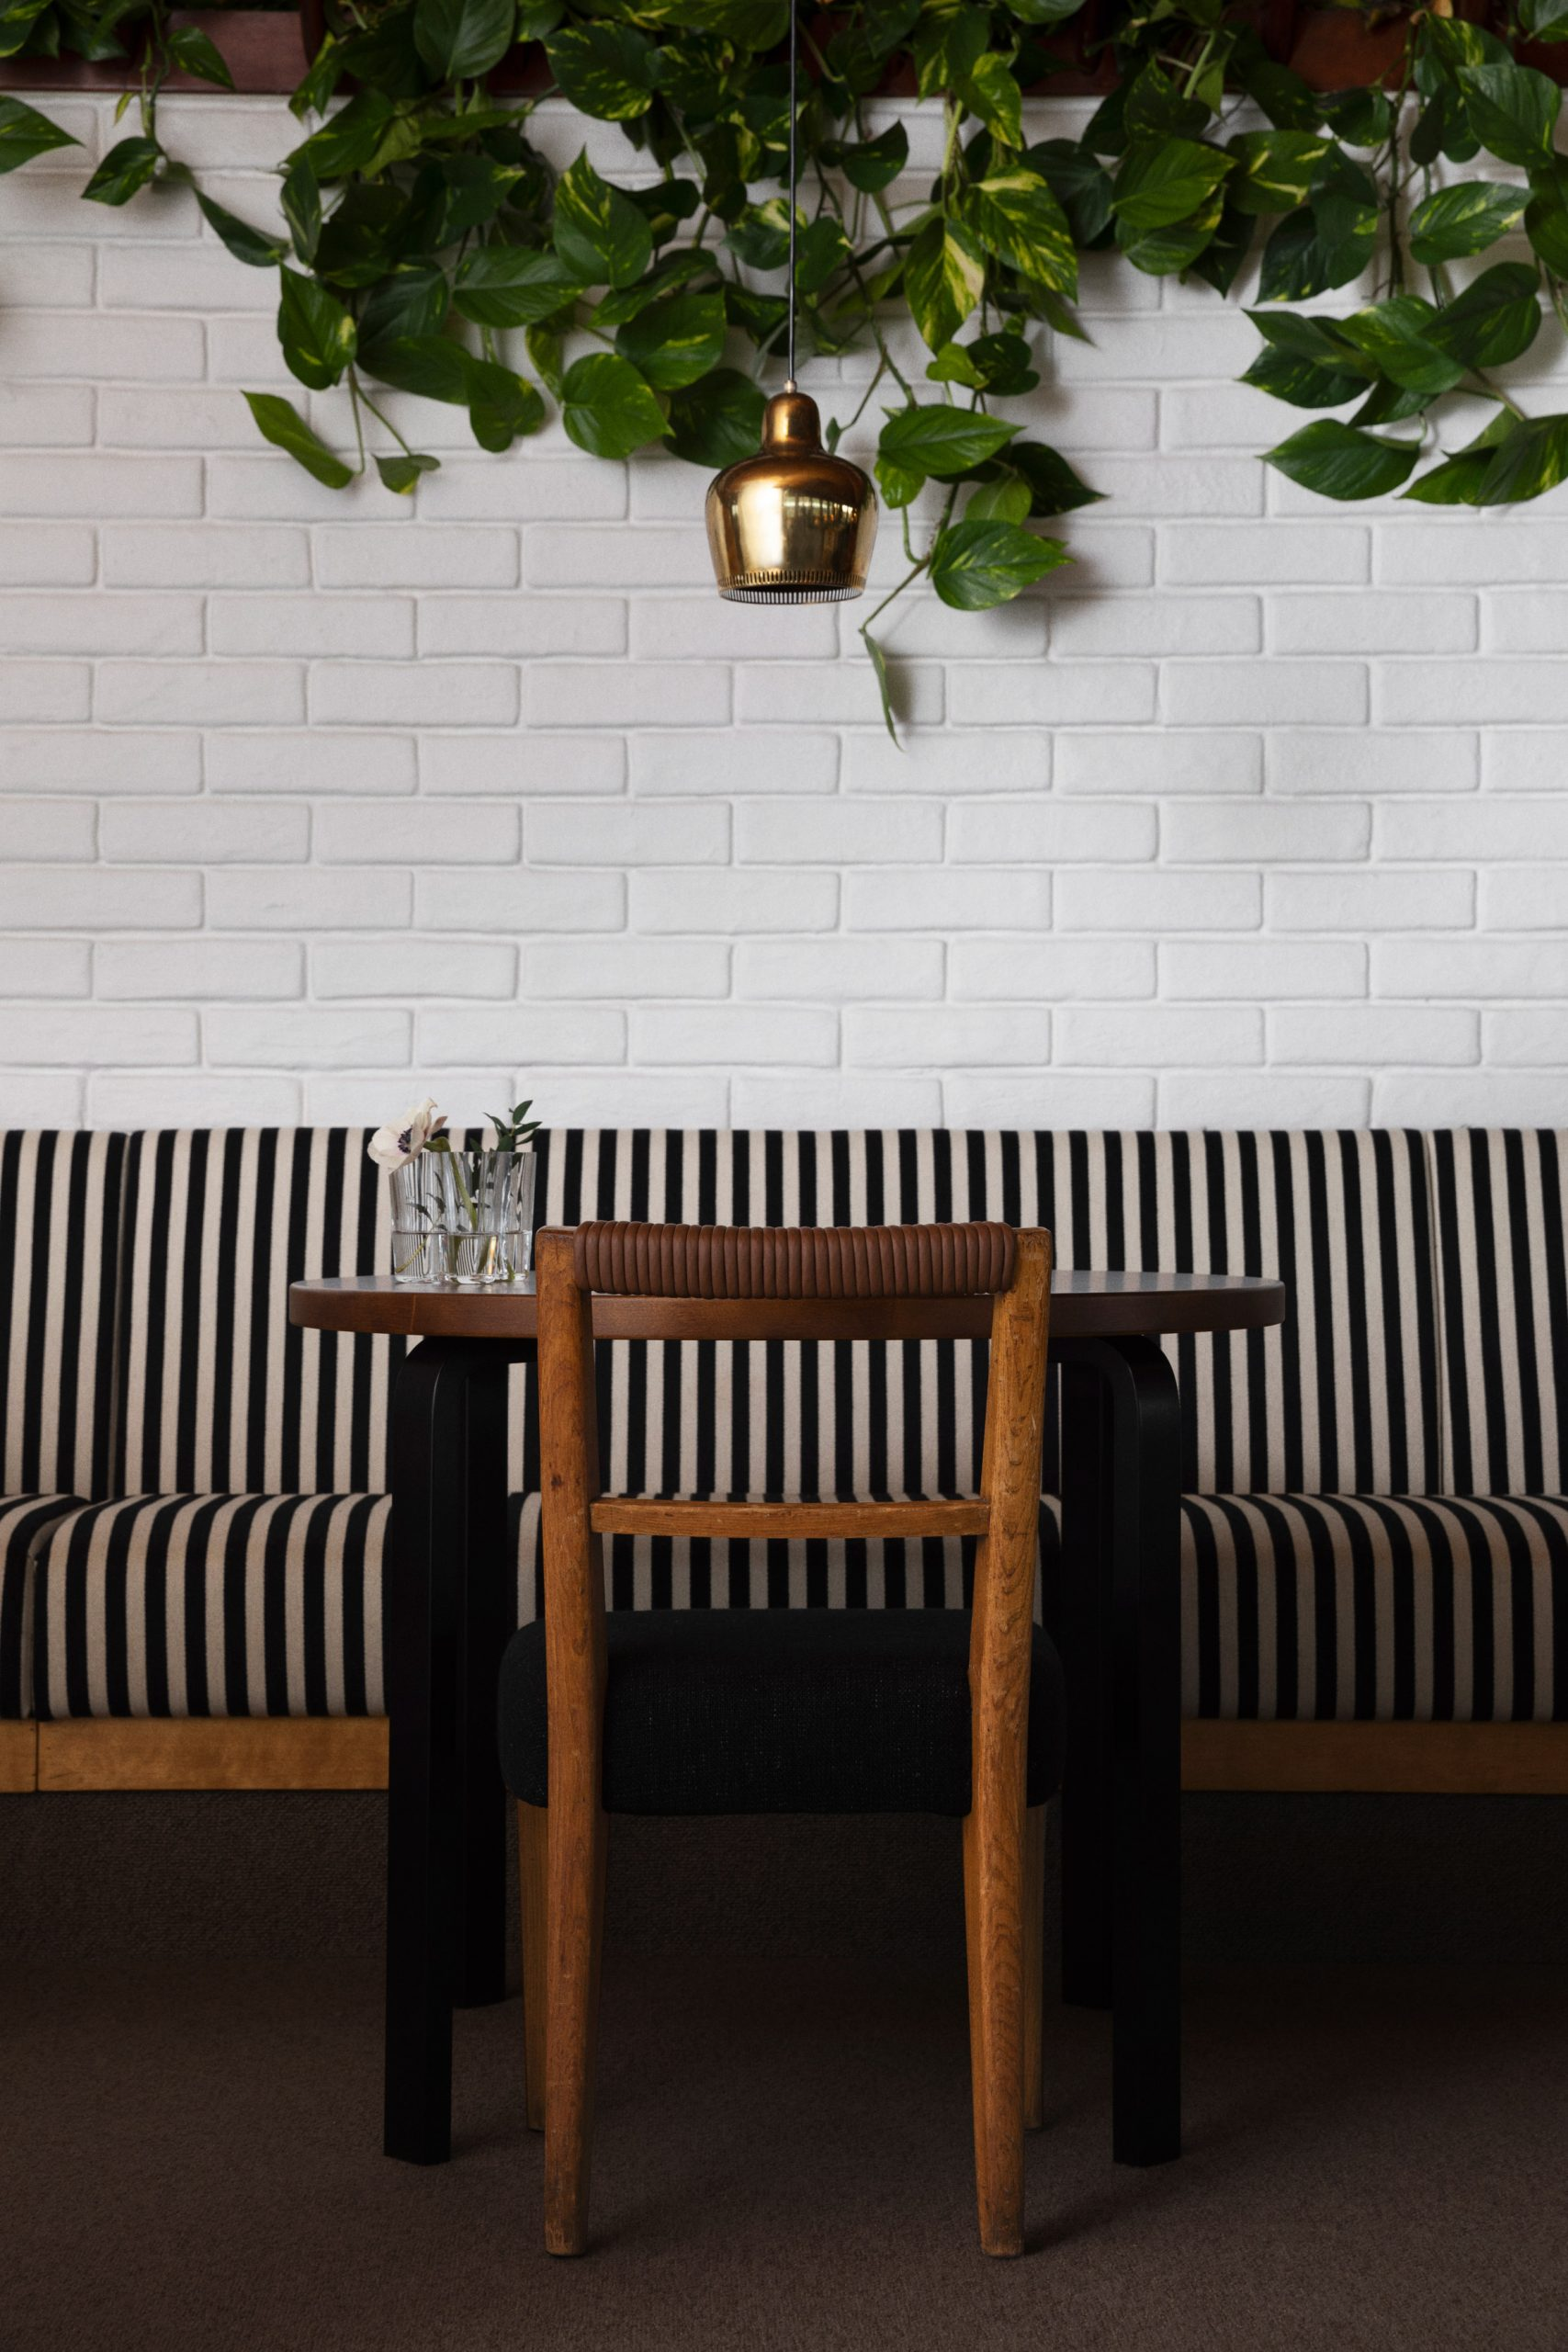 Restaurant Savoy renovation by Studio Ilse and Artek